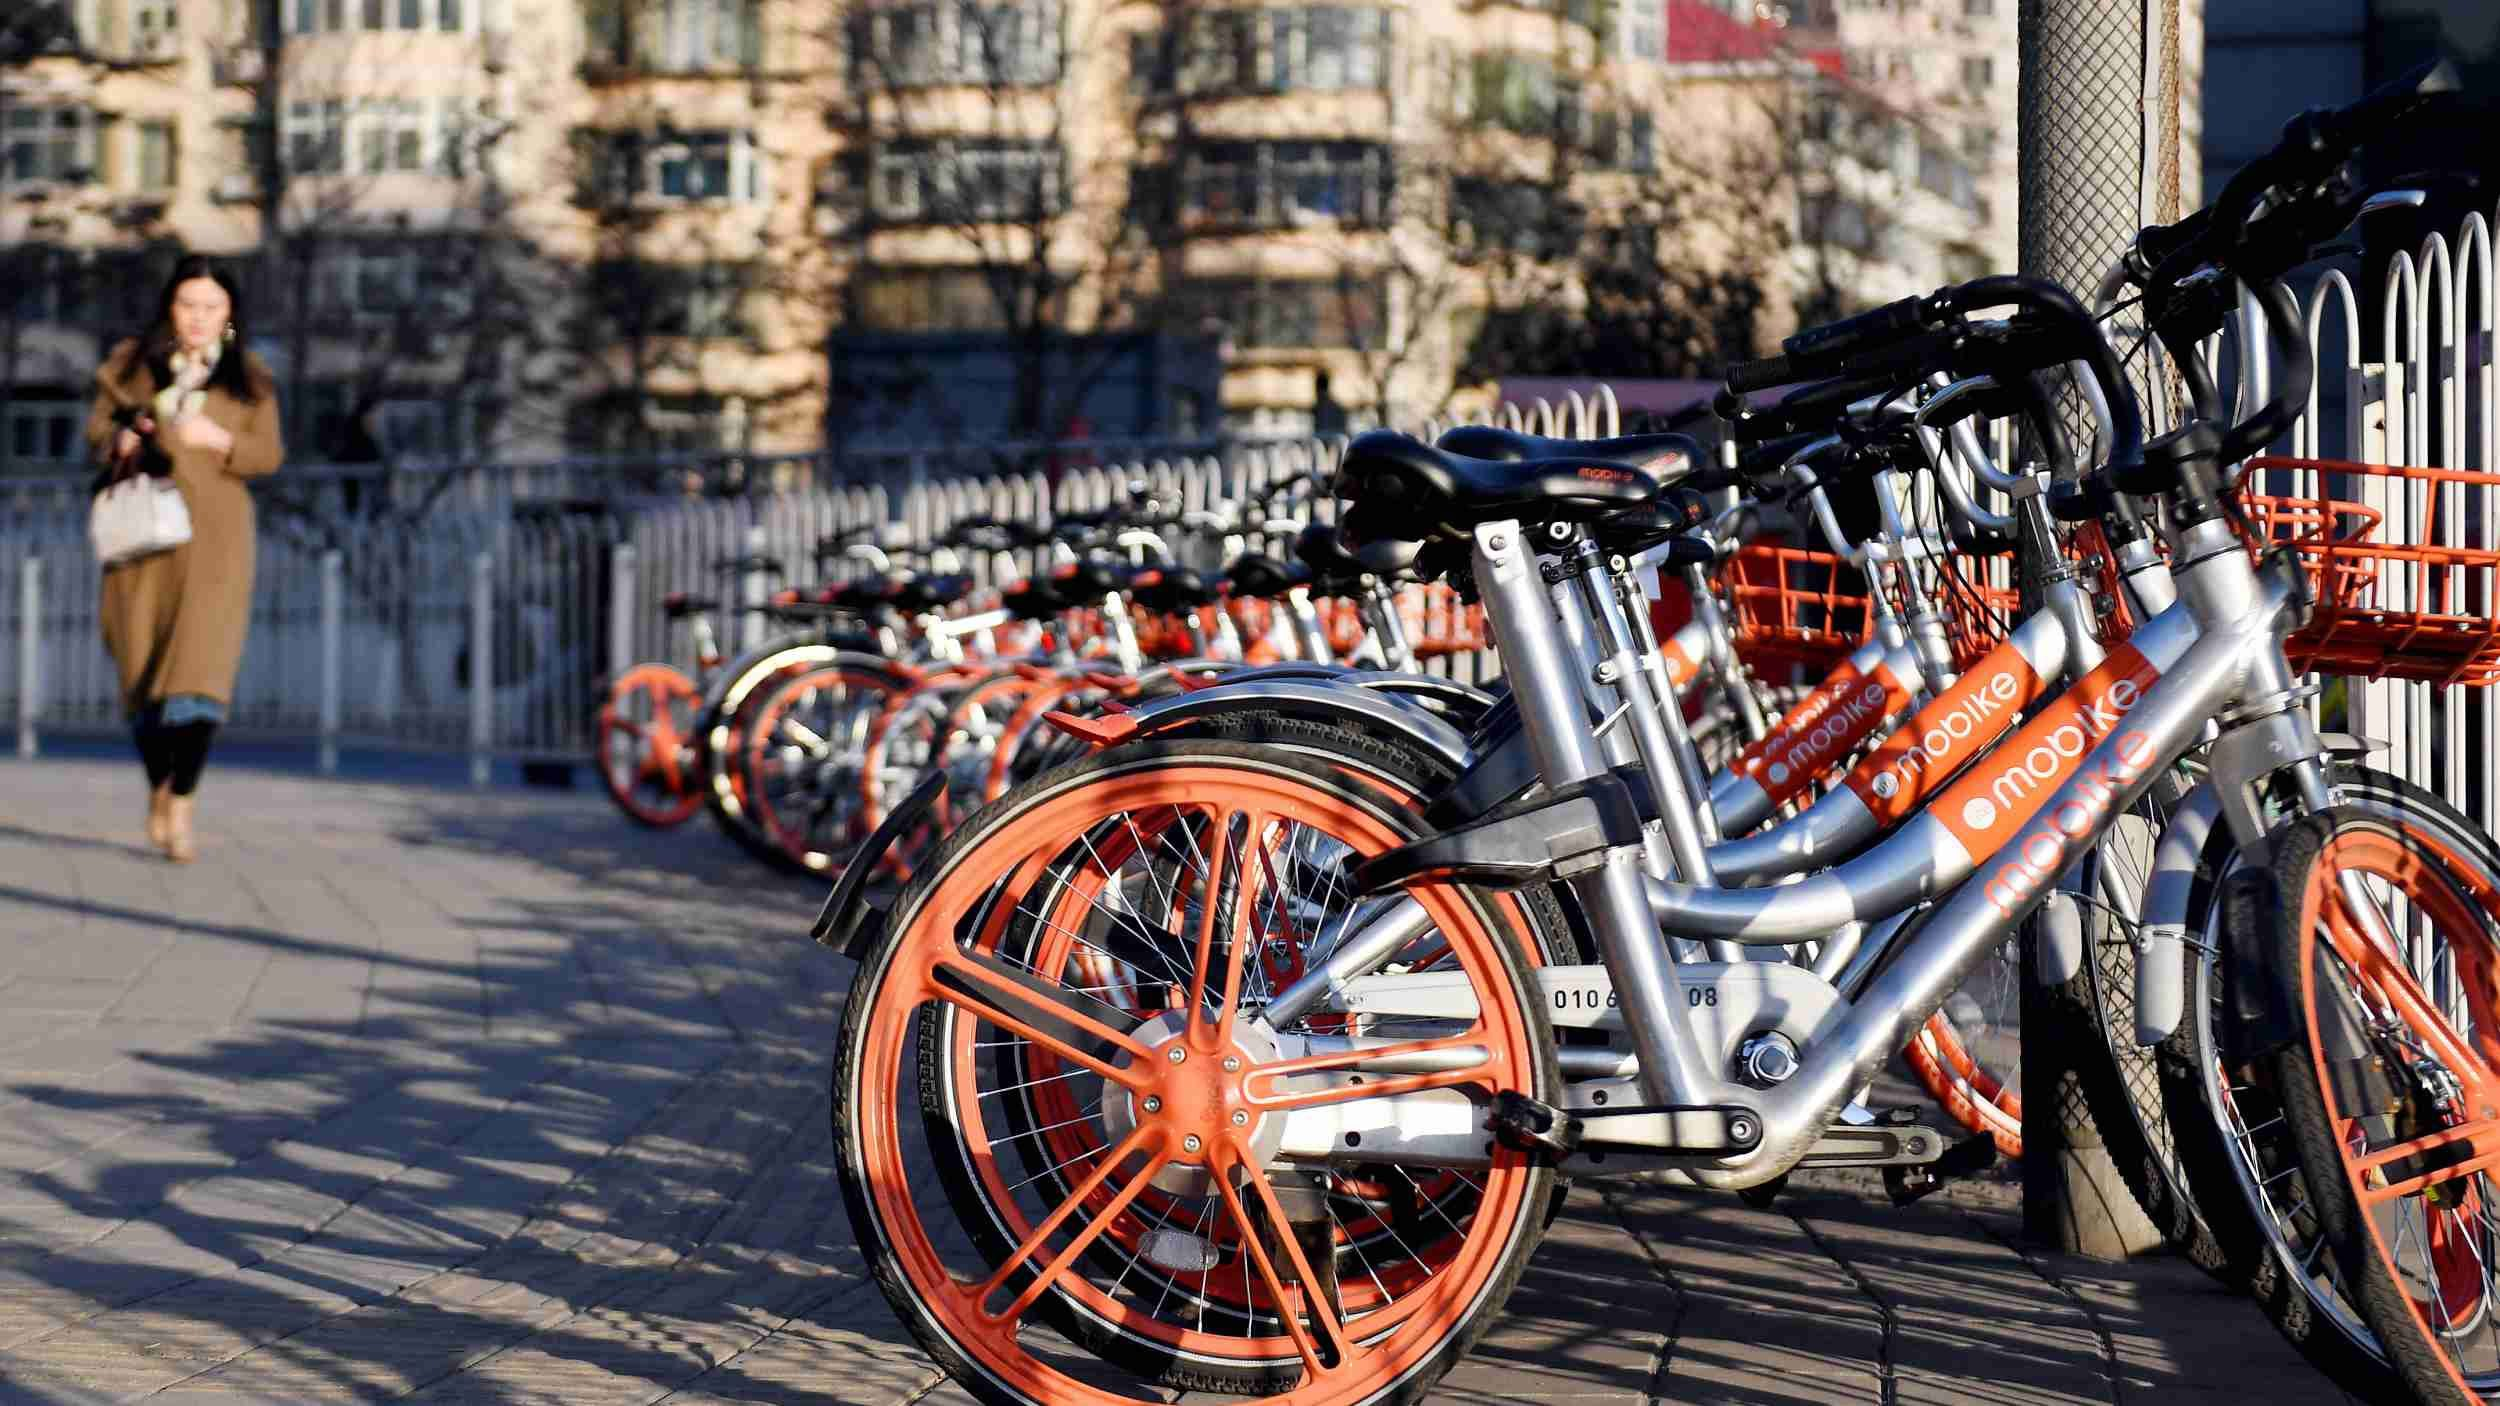 China's bicycle industry reports stable growth in first 11 months of 2019